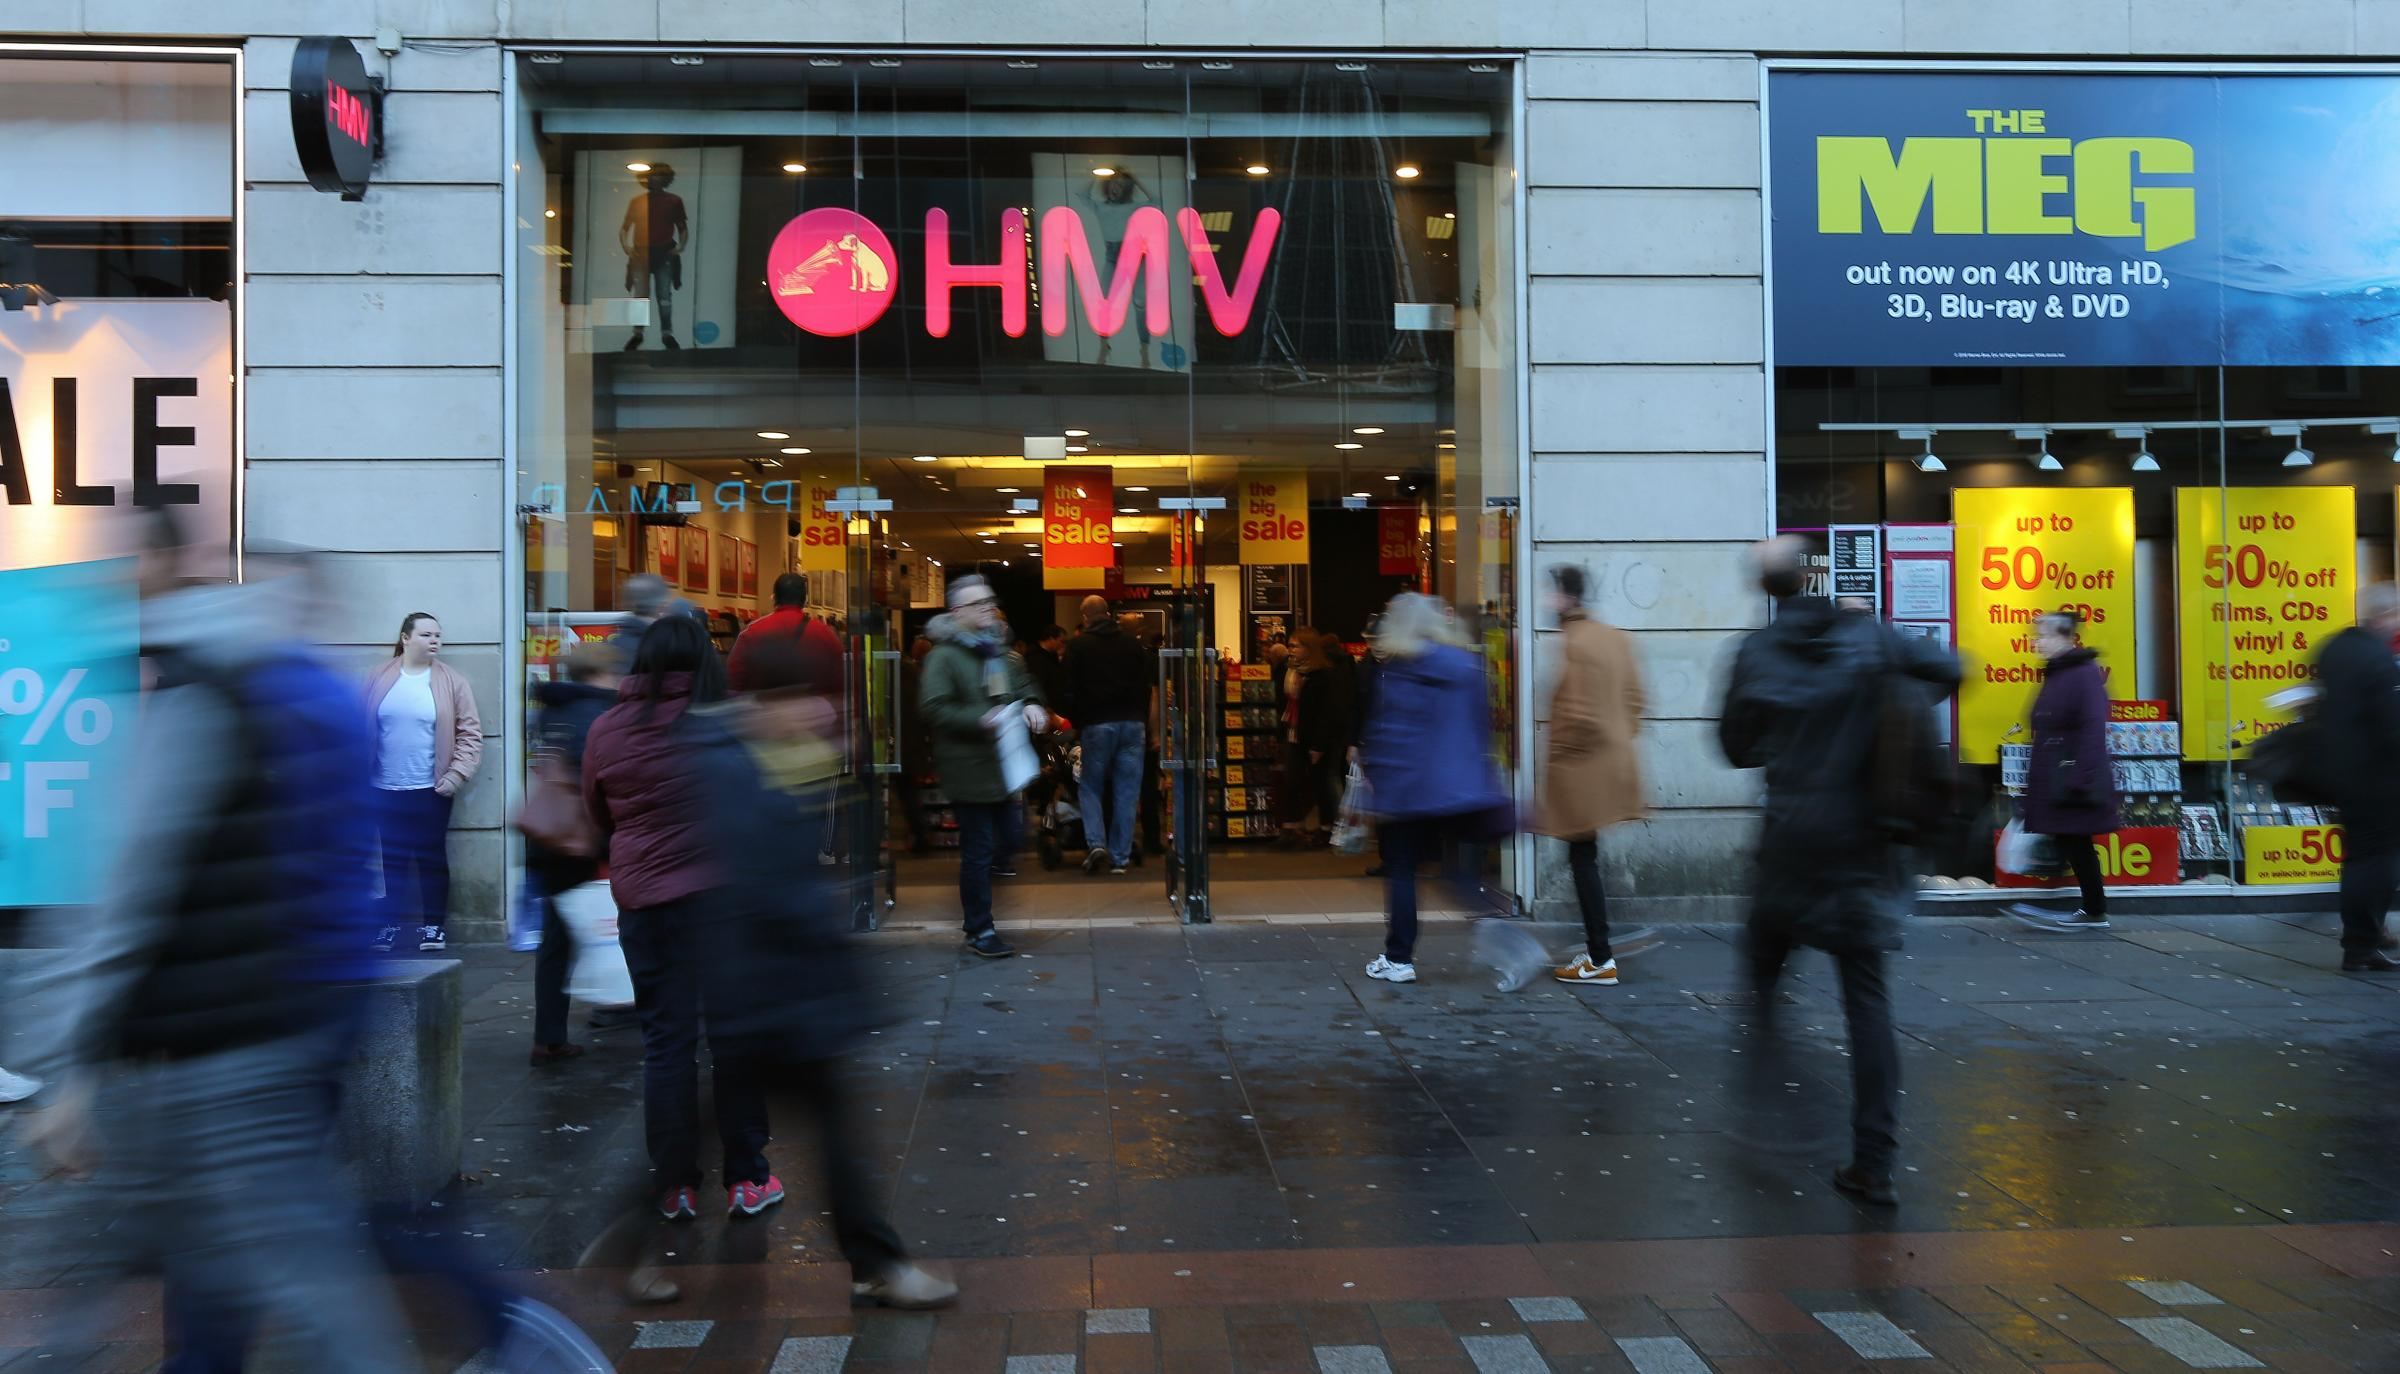 The HMV store on Argyle street, Glasgow. HMV has announced that is has called in administrators putting 2,200 jobs at risk.   Photograph by Colin Mearns28 December 2018